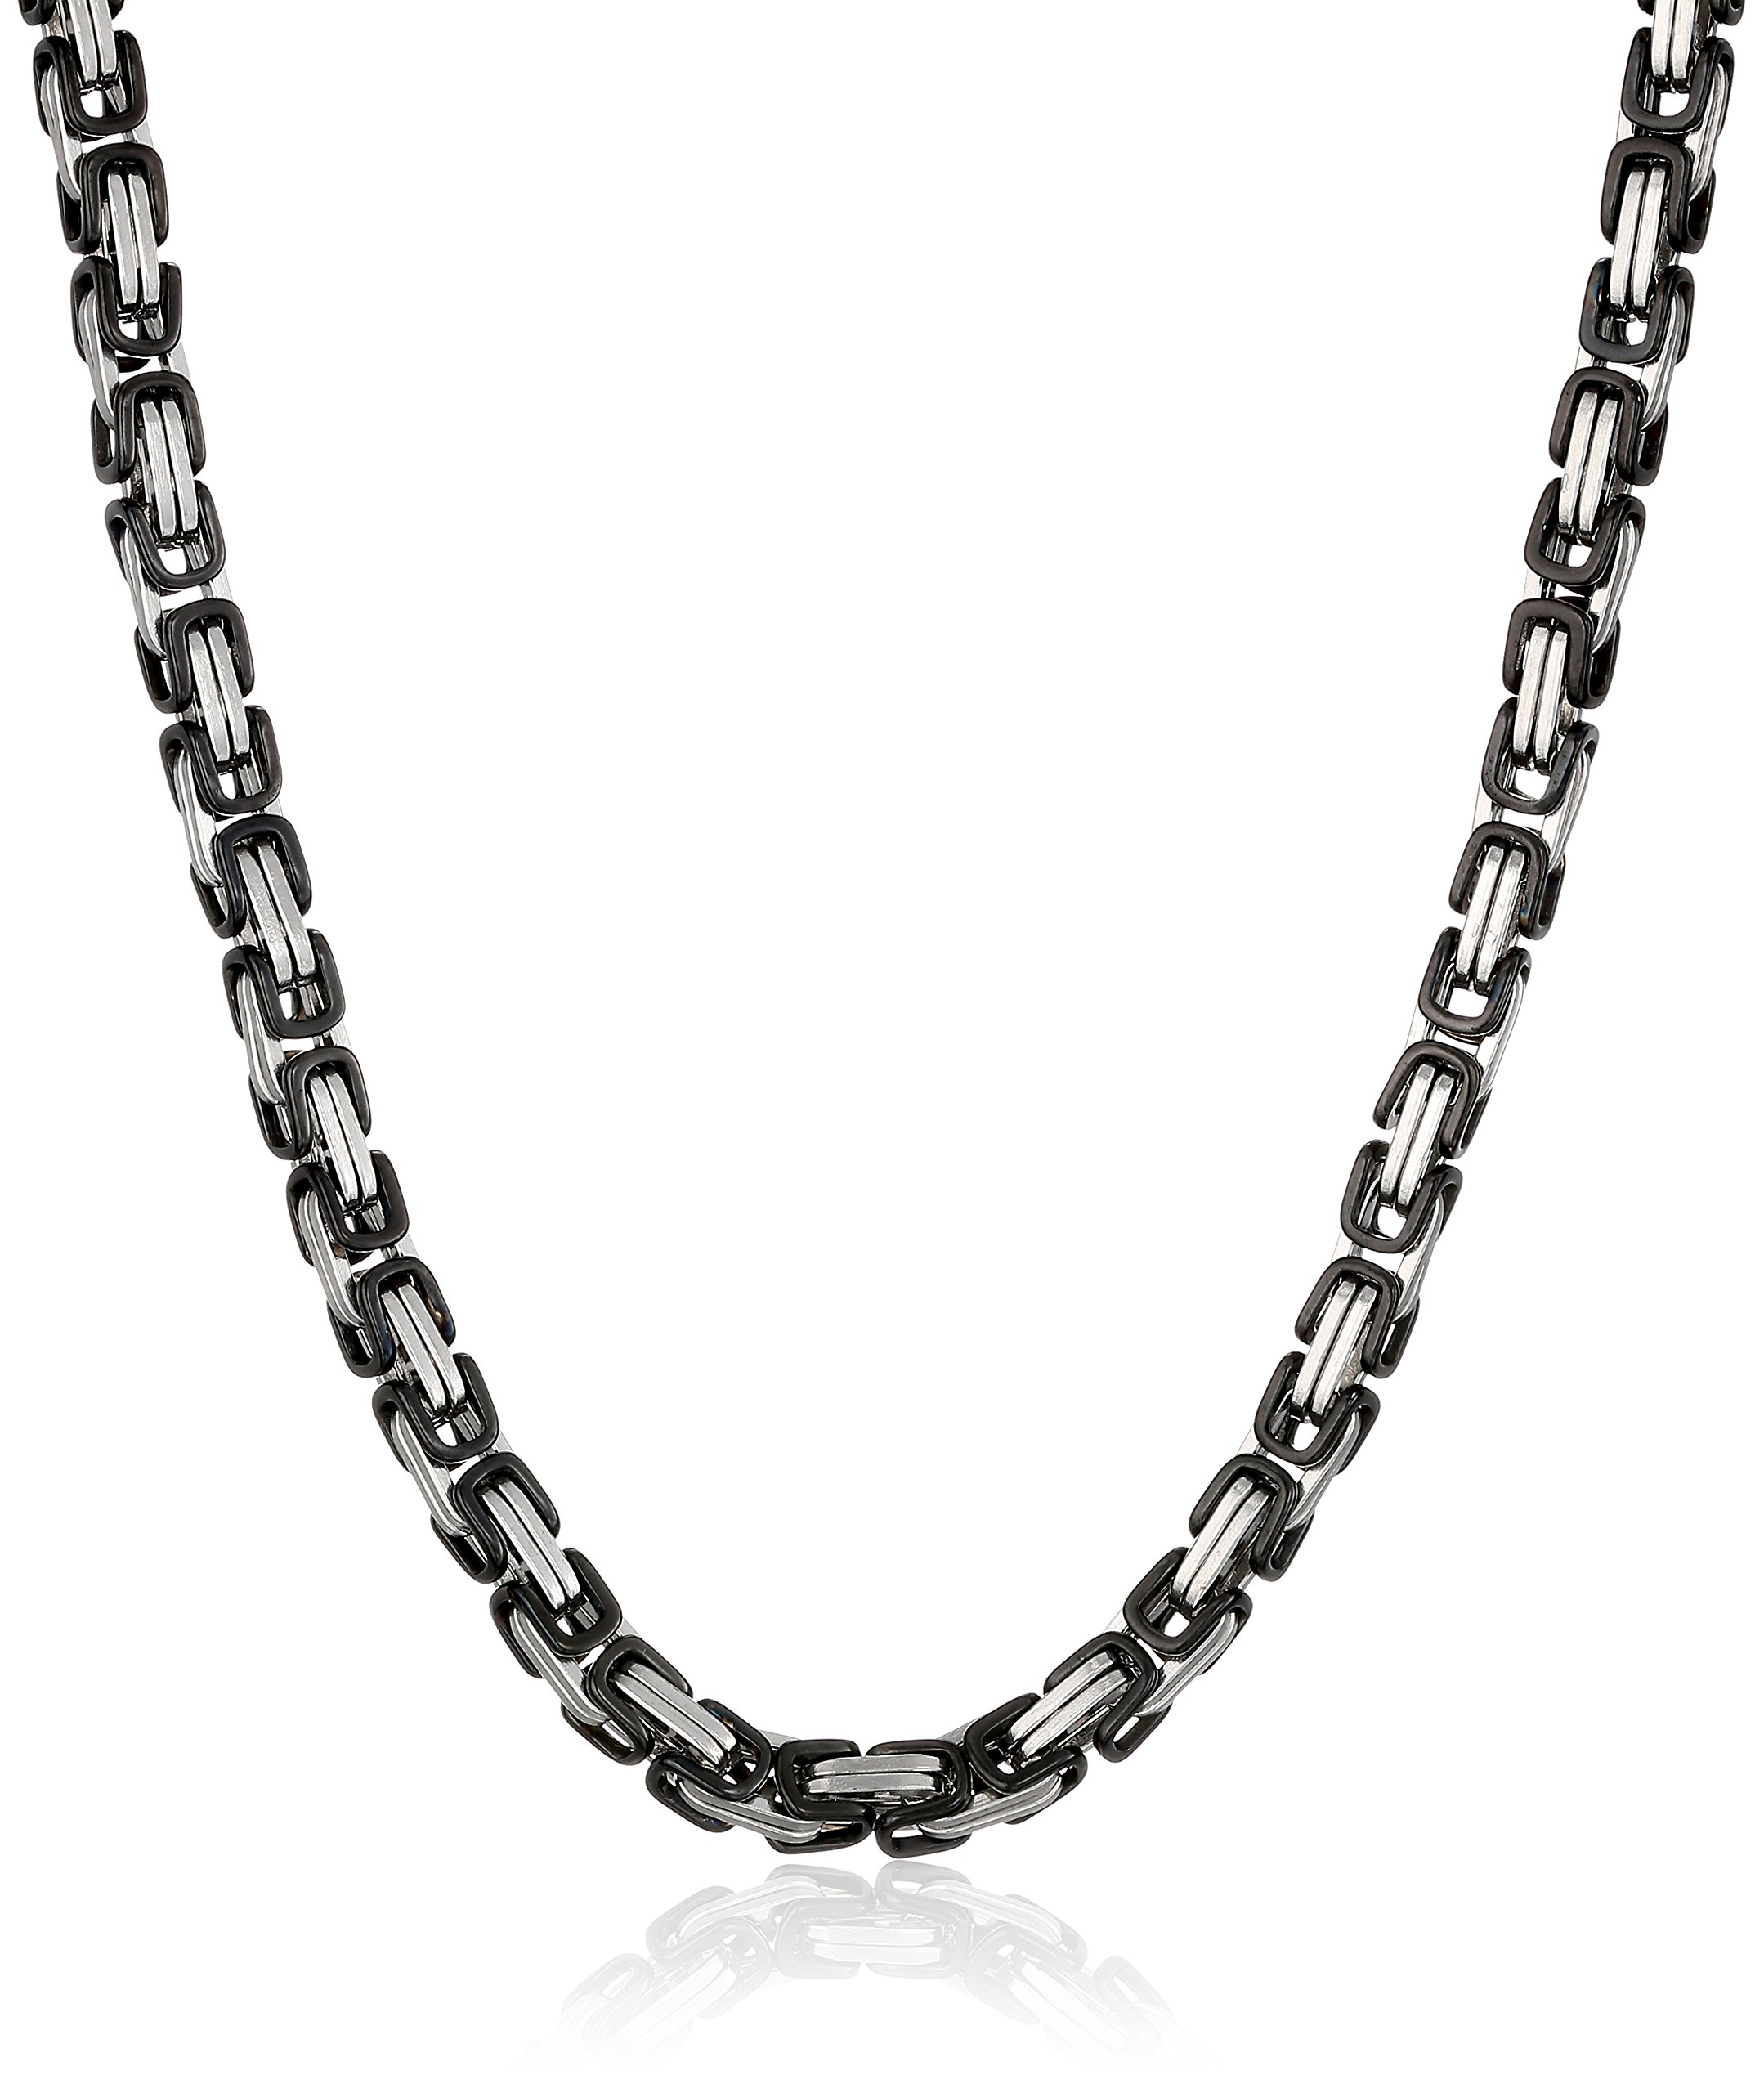 Cold Steel Men's Stainless Steel Black Immersion Plated Chain Necklace, 22''